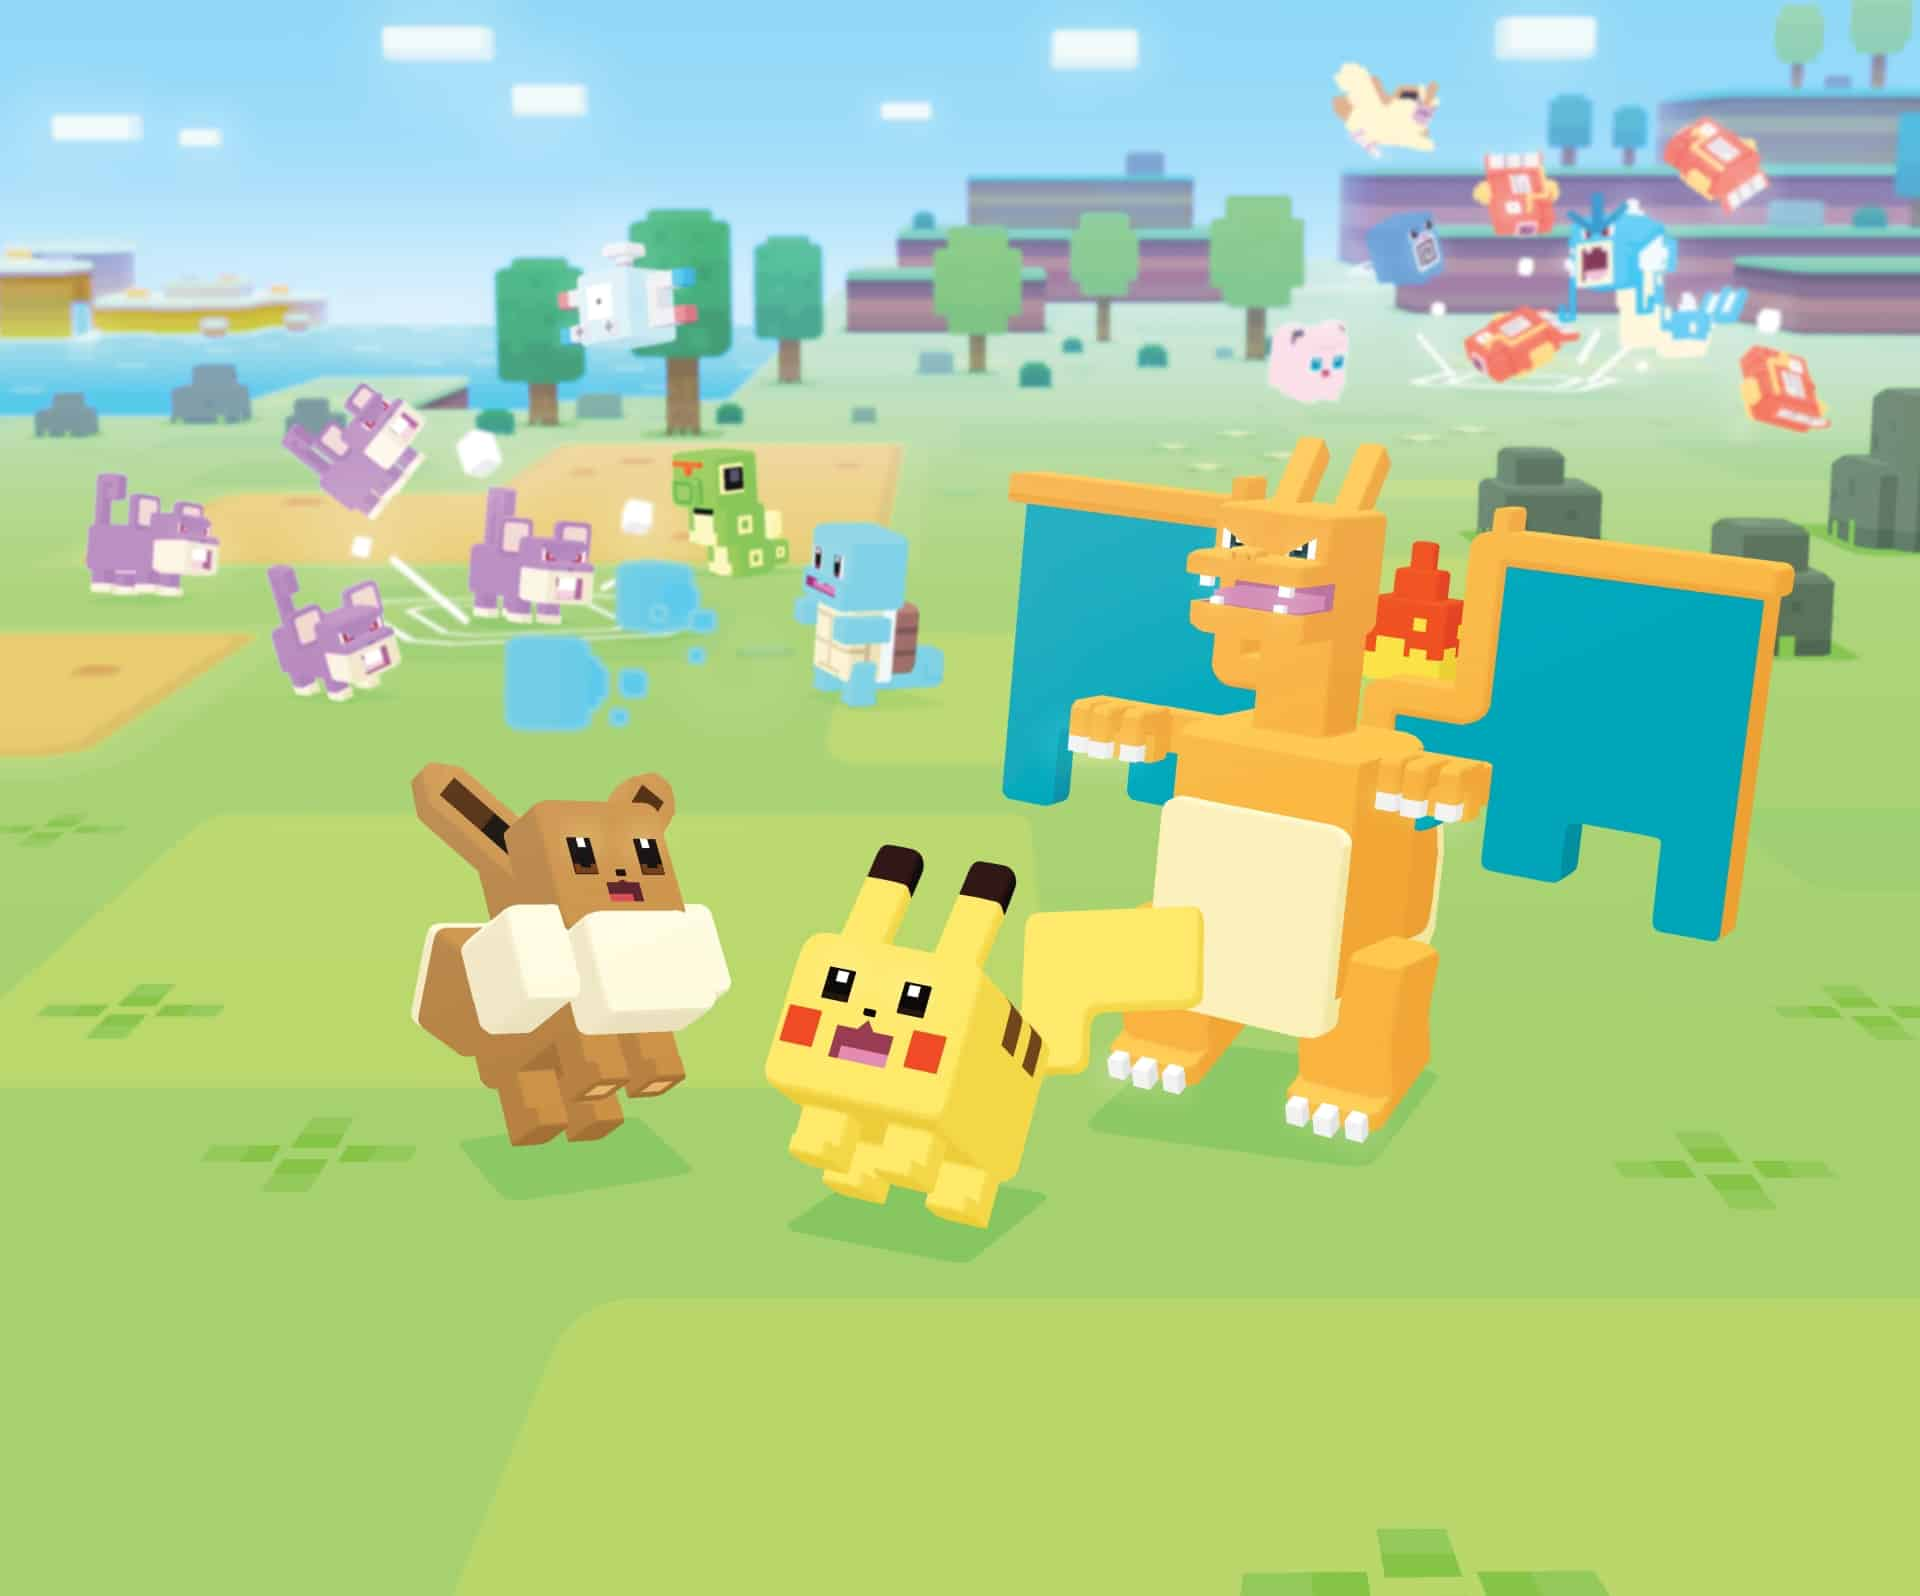 Pokemon Quest Mainvisual Rgb 300dpi Png Jpgcopy